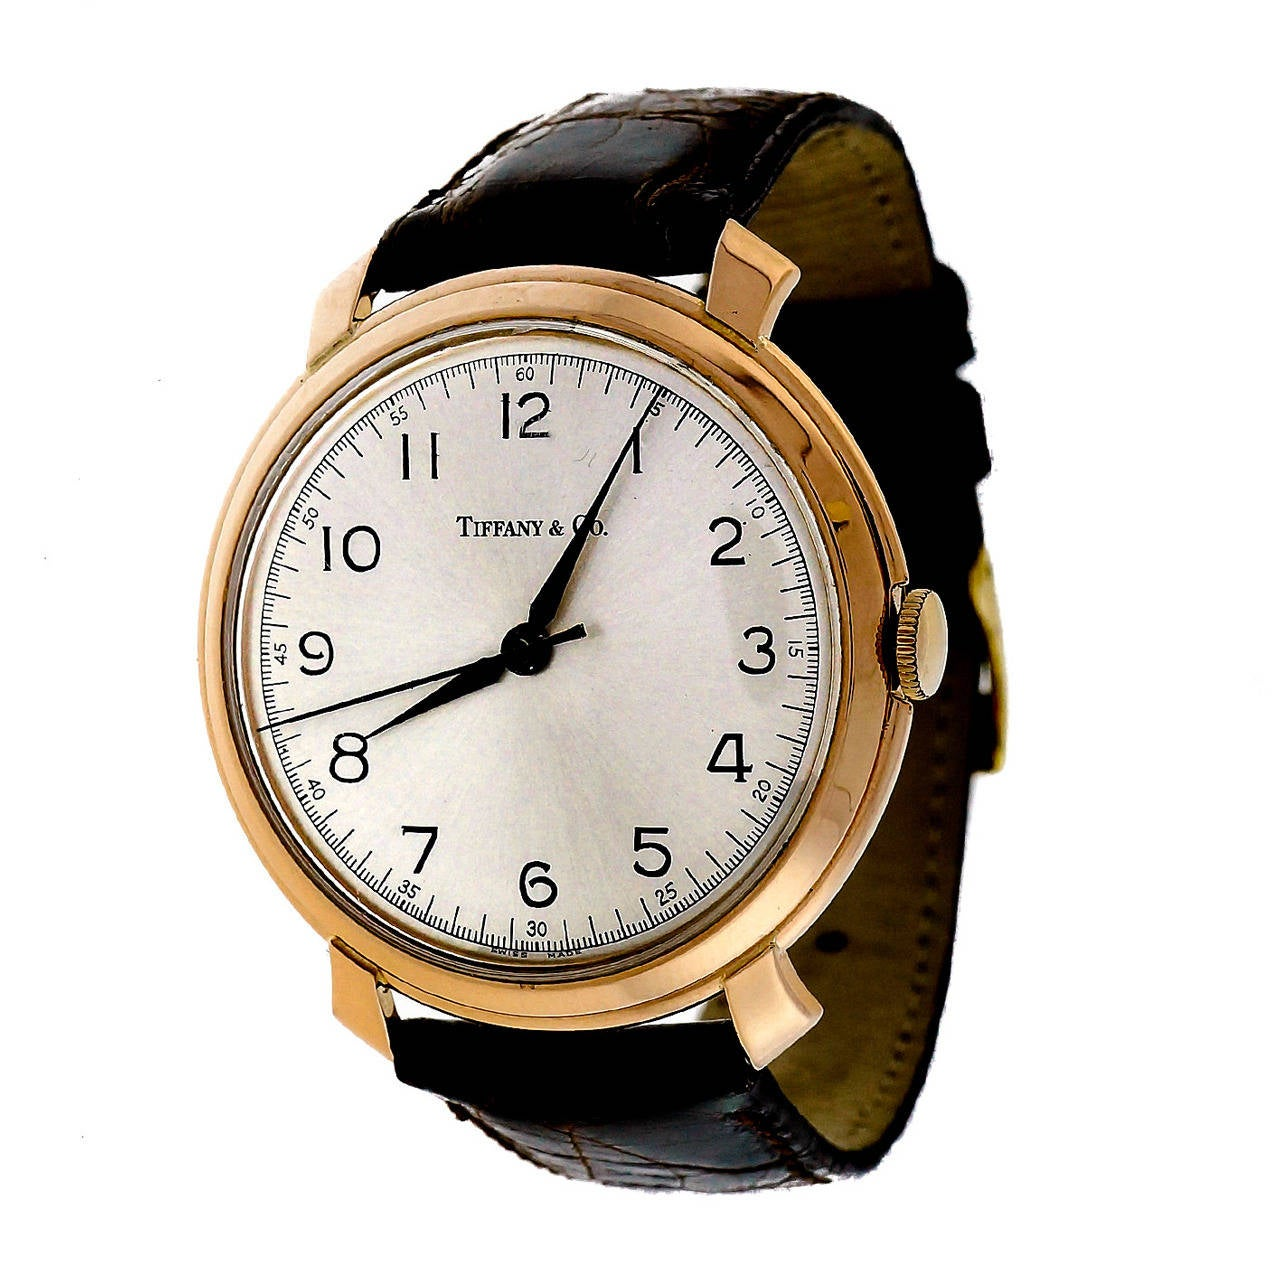 IWC Rose Gold Wristwatch Retailed by Tiffany & Co. 1